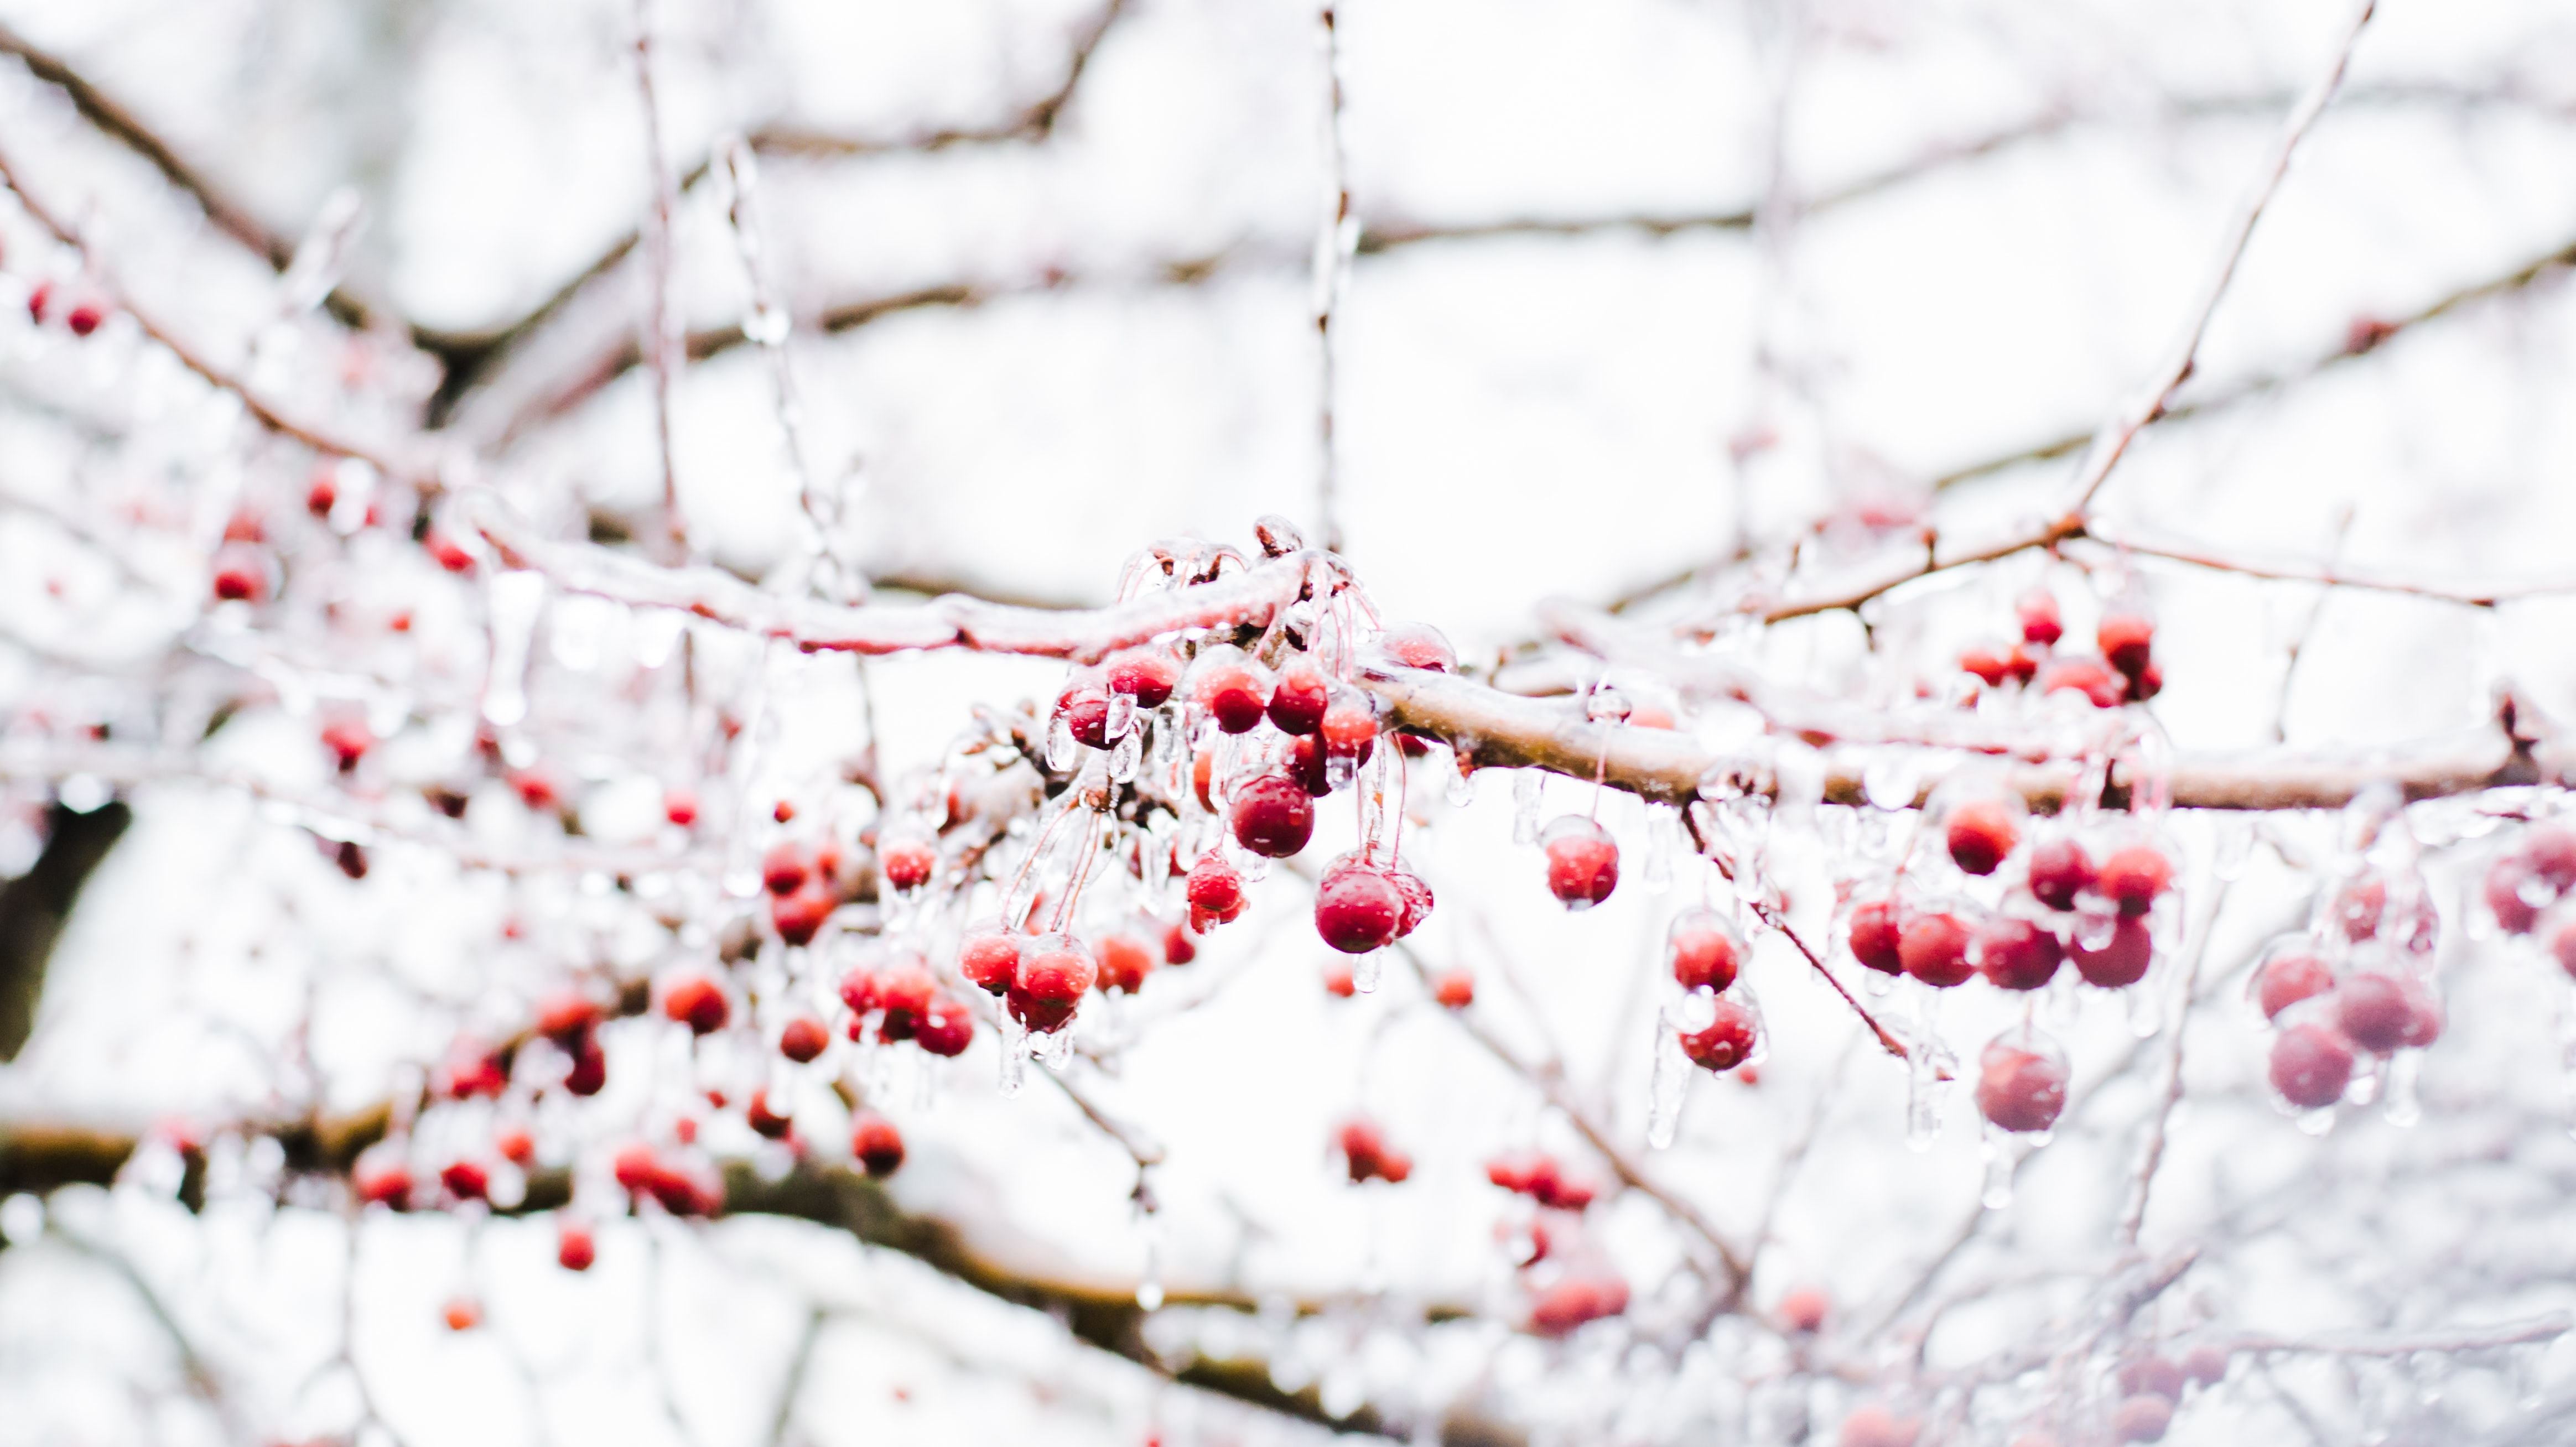 round red fruits on bare tree